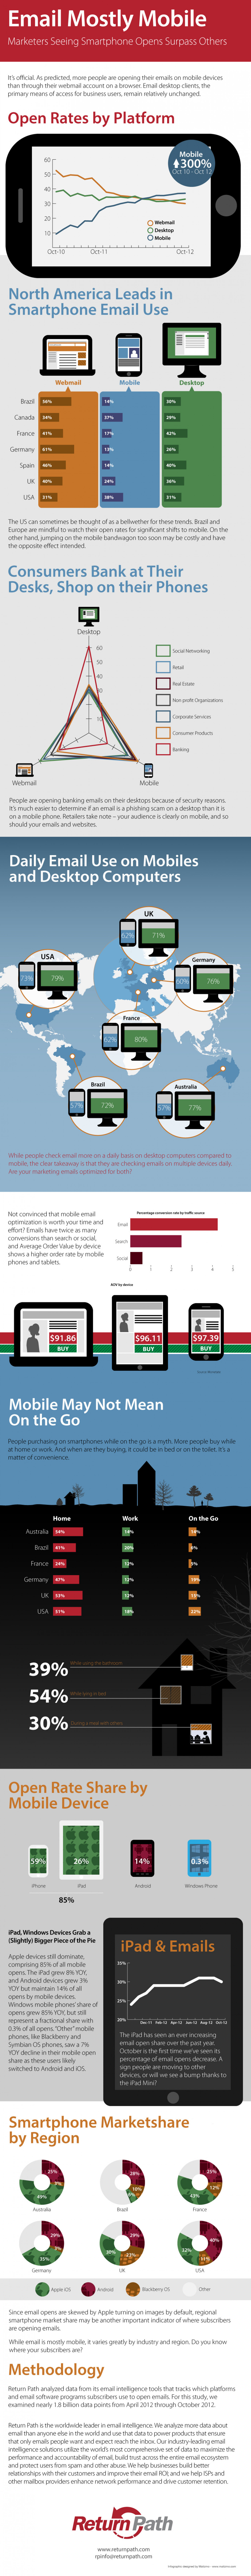 Email Mostly Mobile Infographic